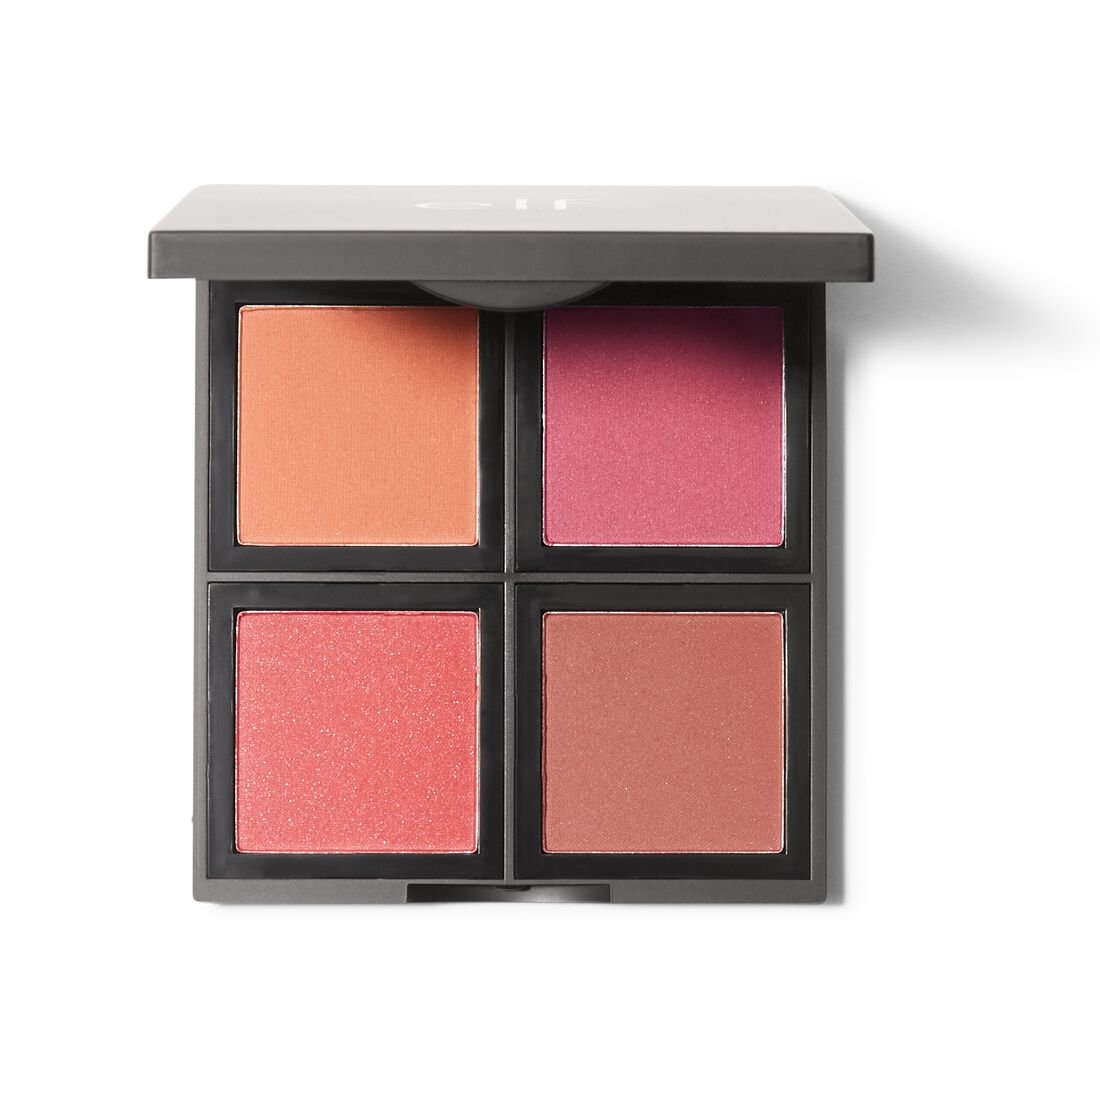 e.l.f. Cosmetics - Powder Blush Palette, Dark